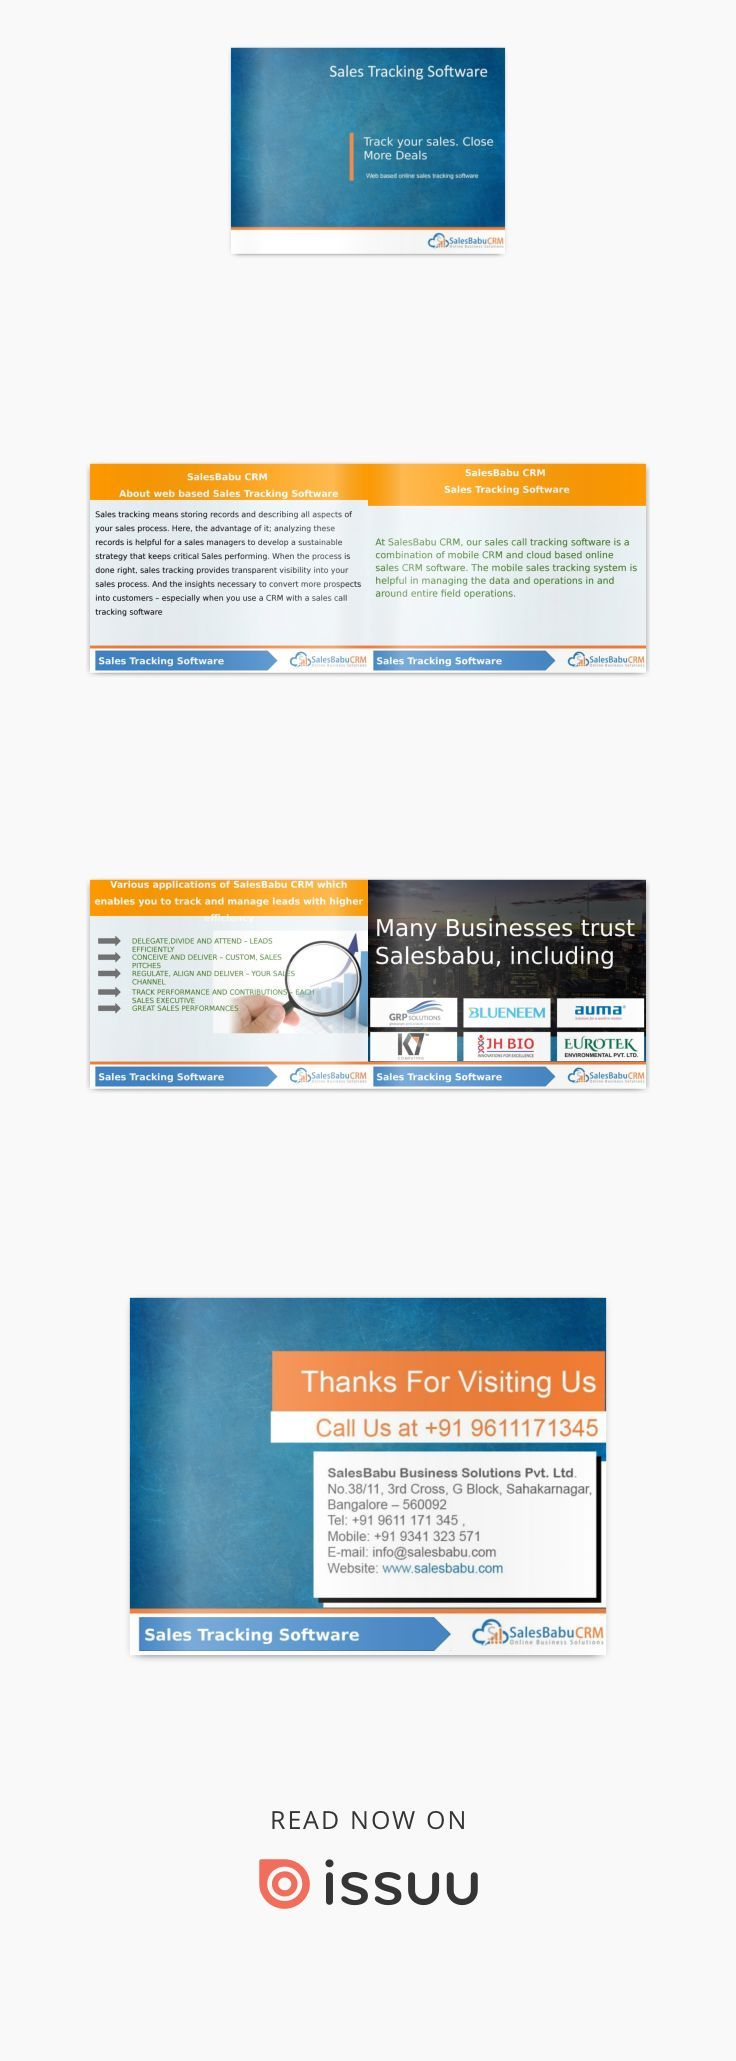 salesbabu sales tracking software track your sales close more